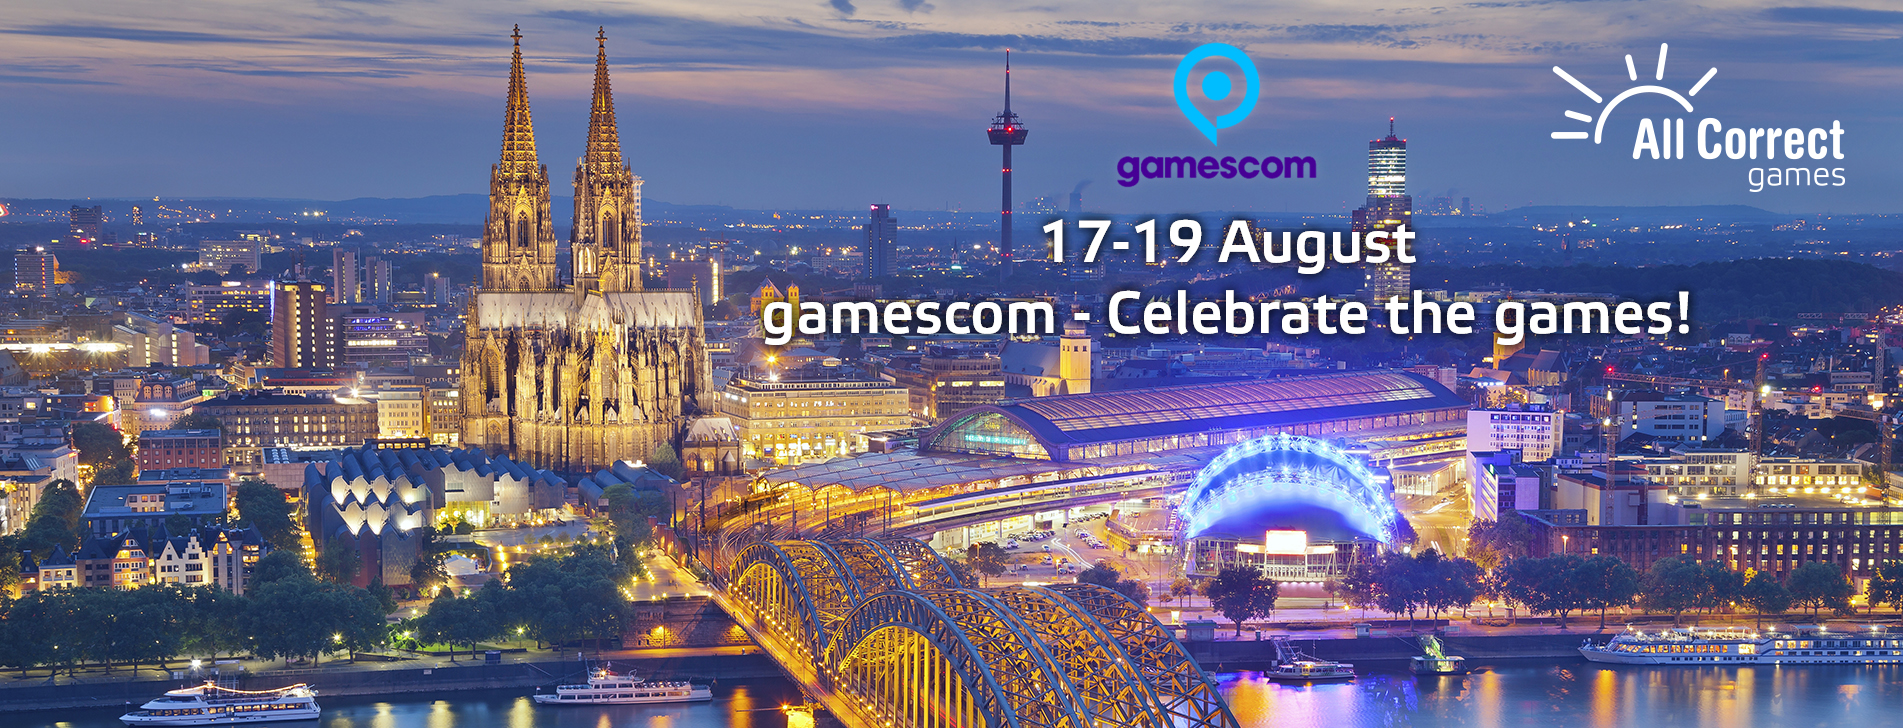 HURRY UP AND ARRANGE A MEETING WITH US AT GAMESCOM